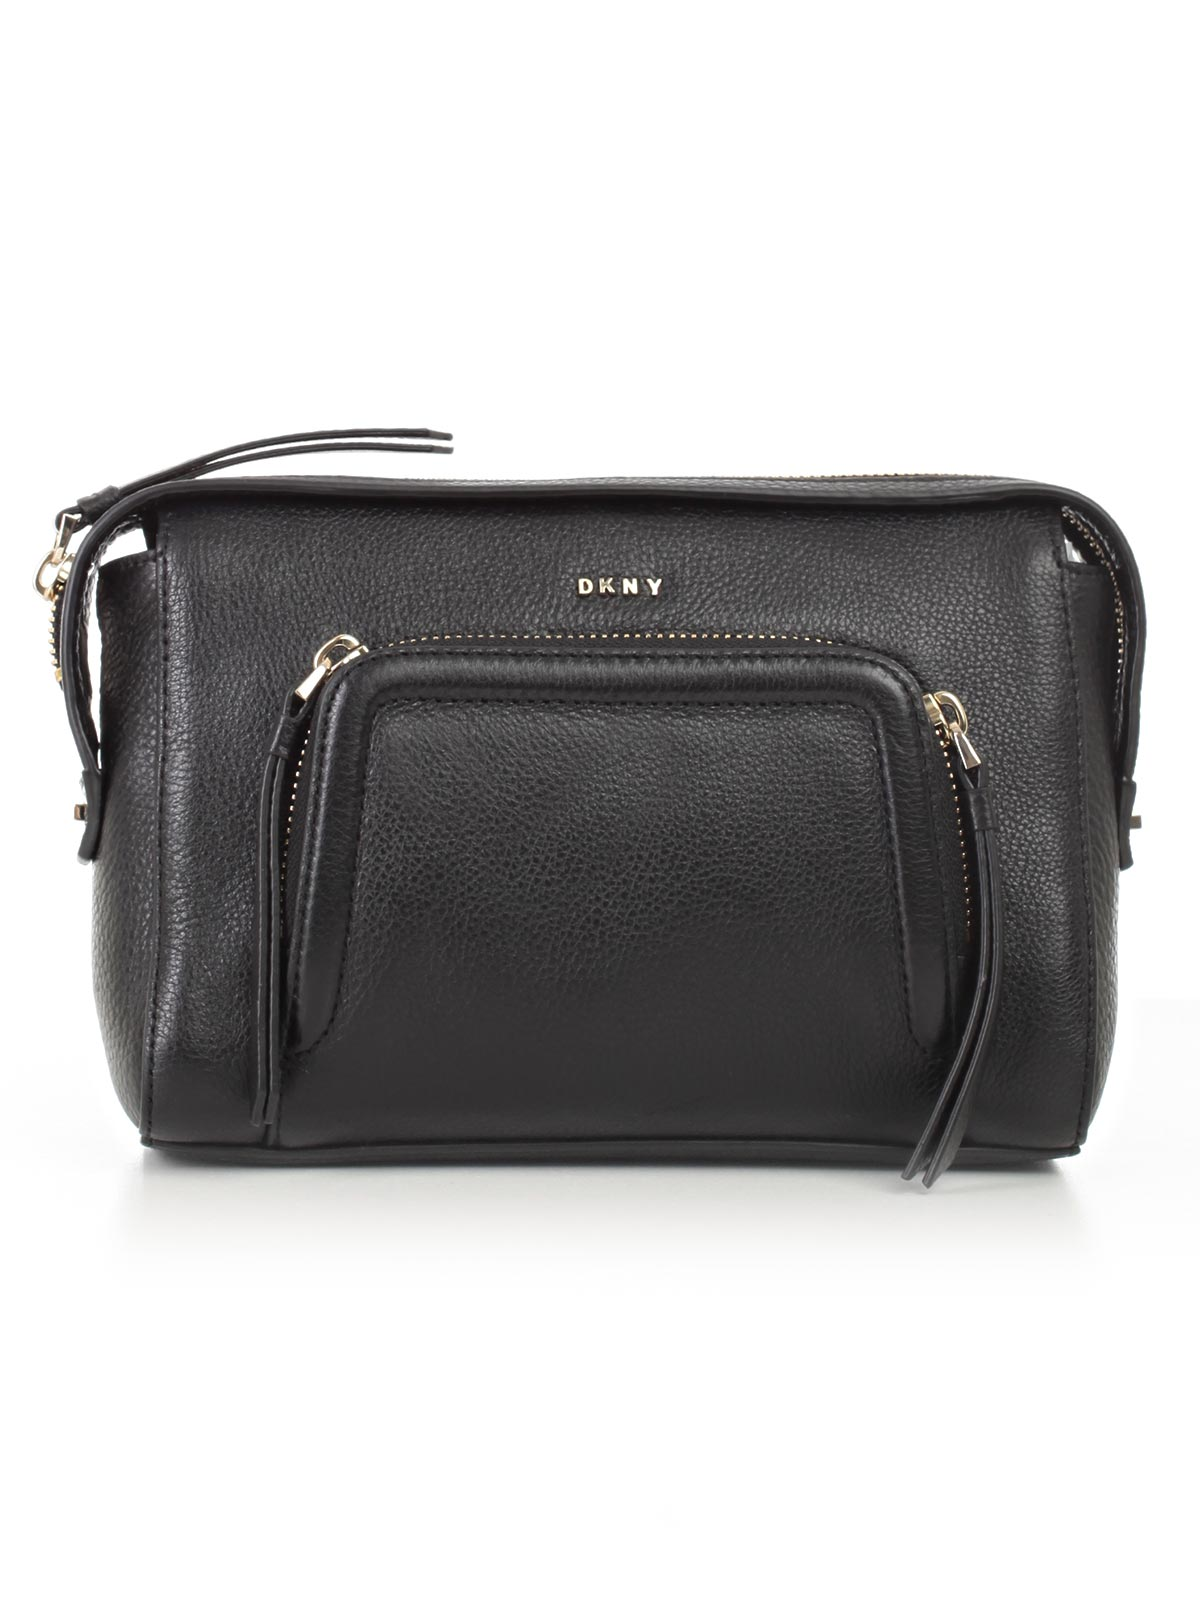 Picture of DKNY BAG CROSSBODY TRACOLLINA ZIP